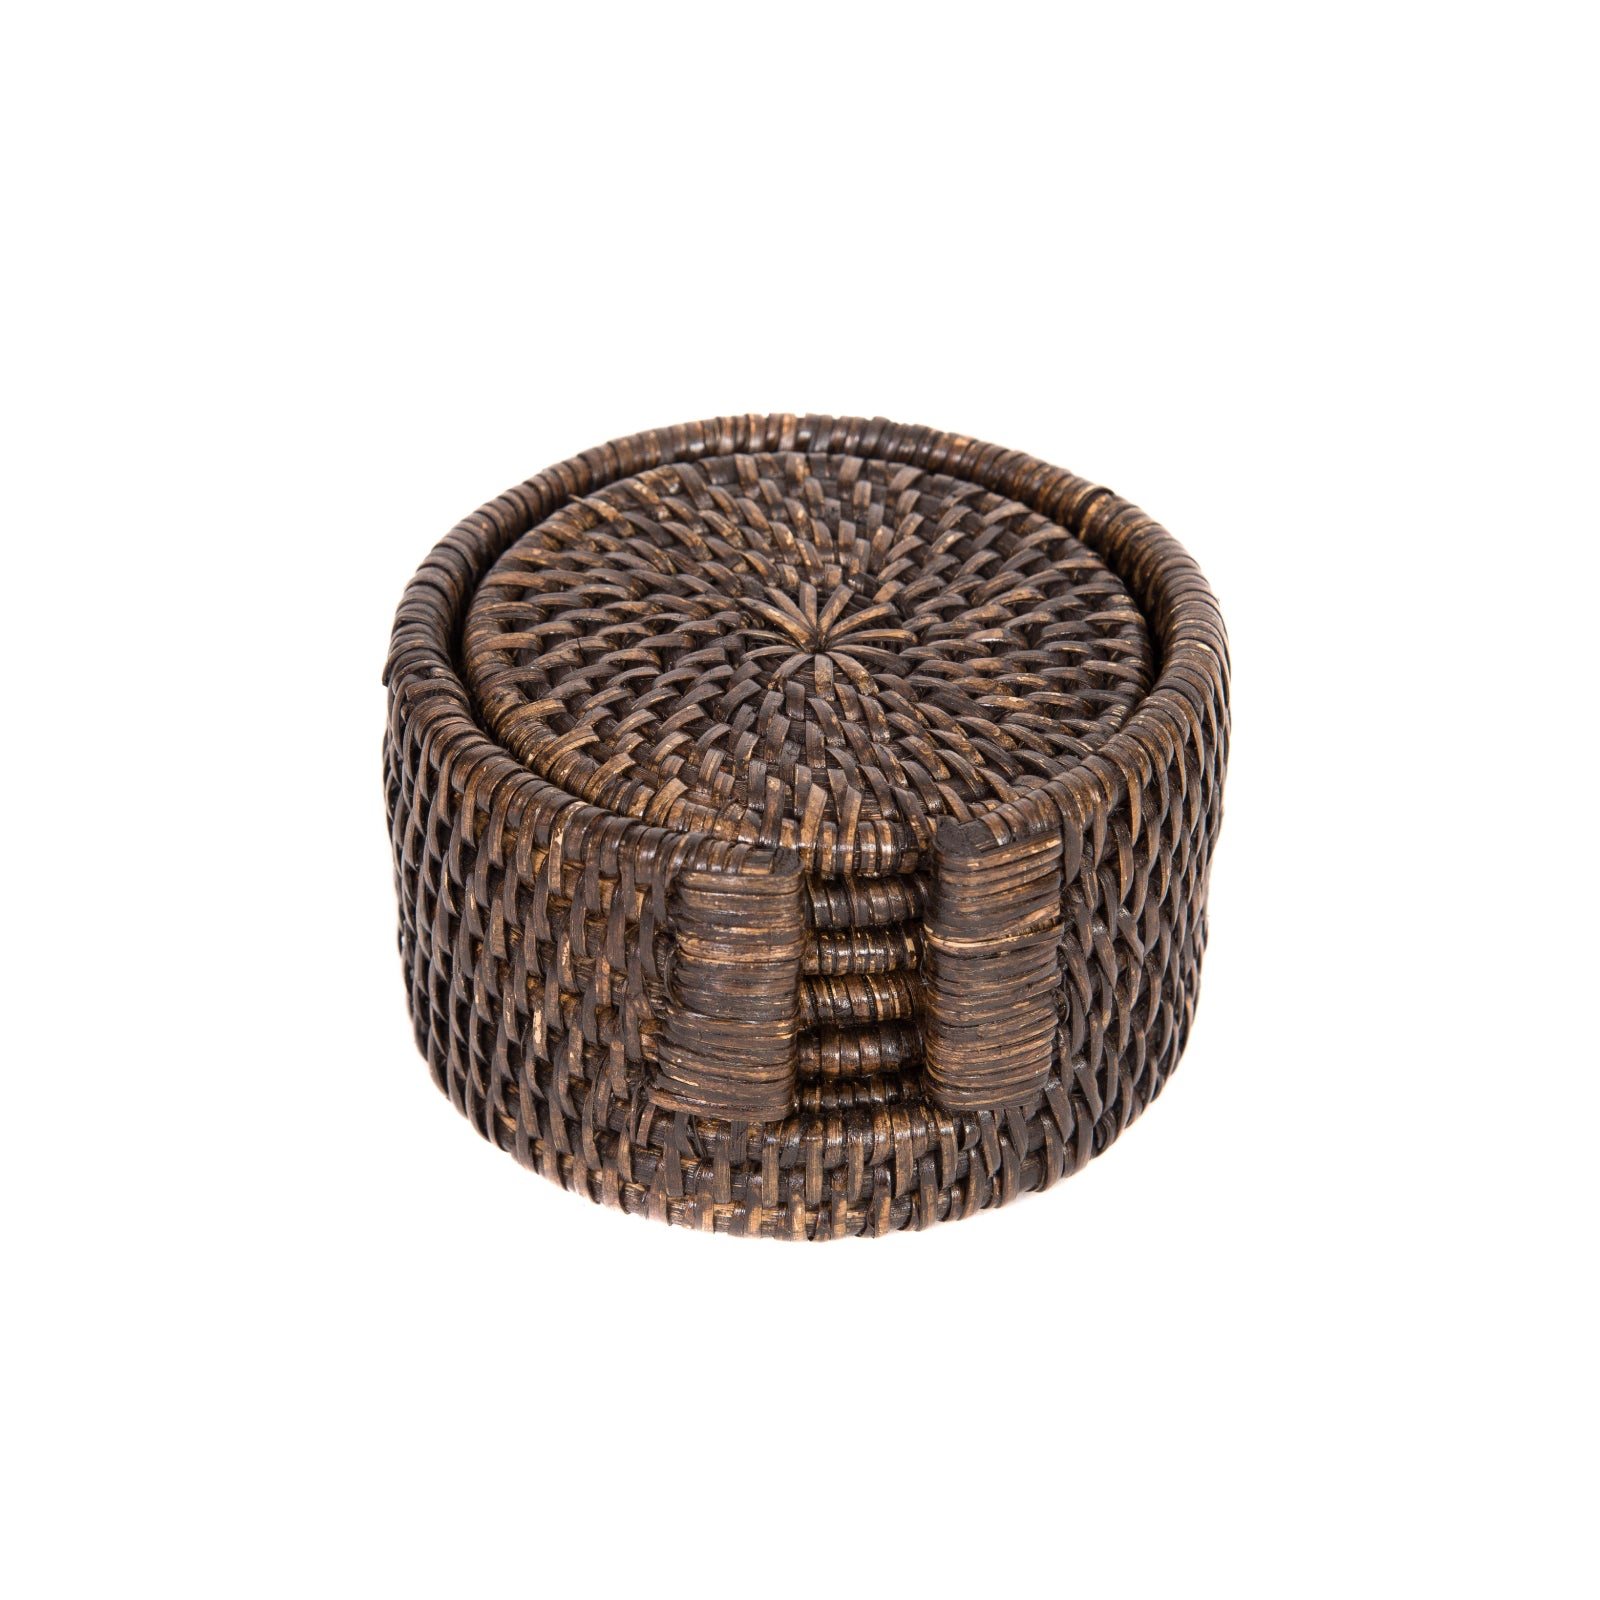 Rattan Coaster Set in Espresso